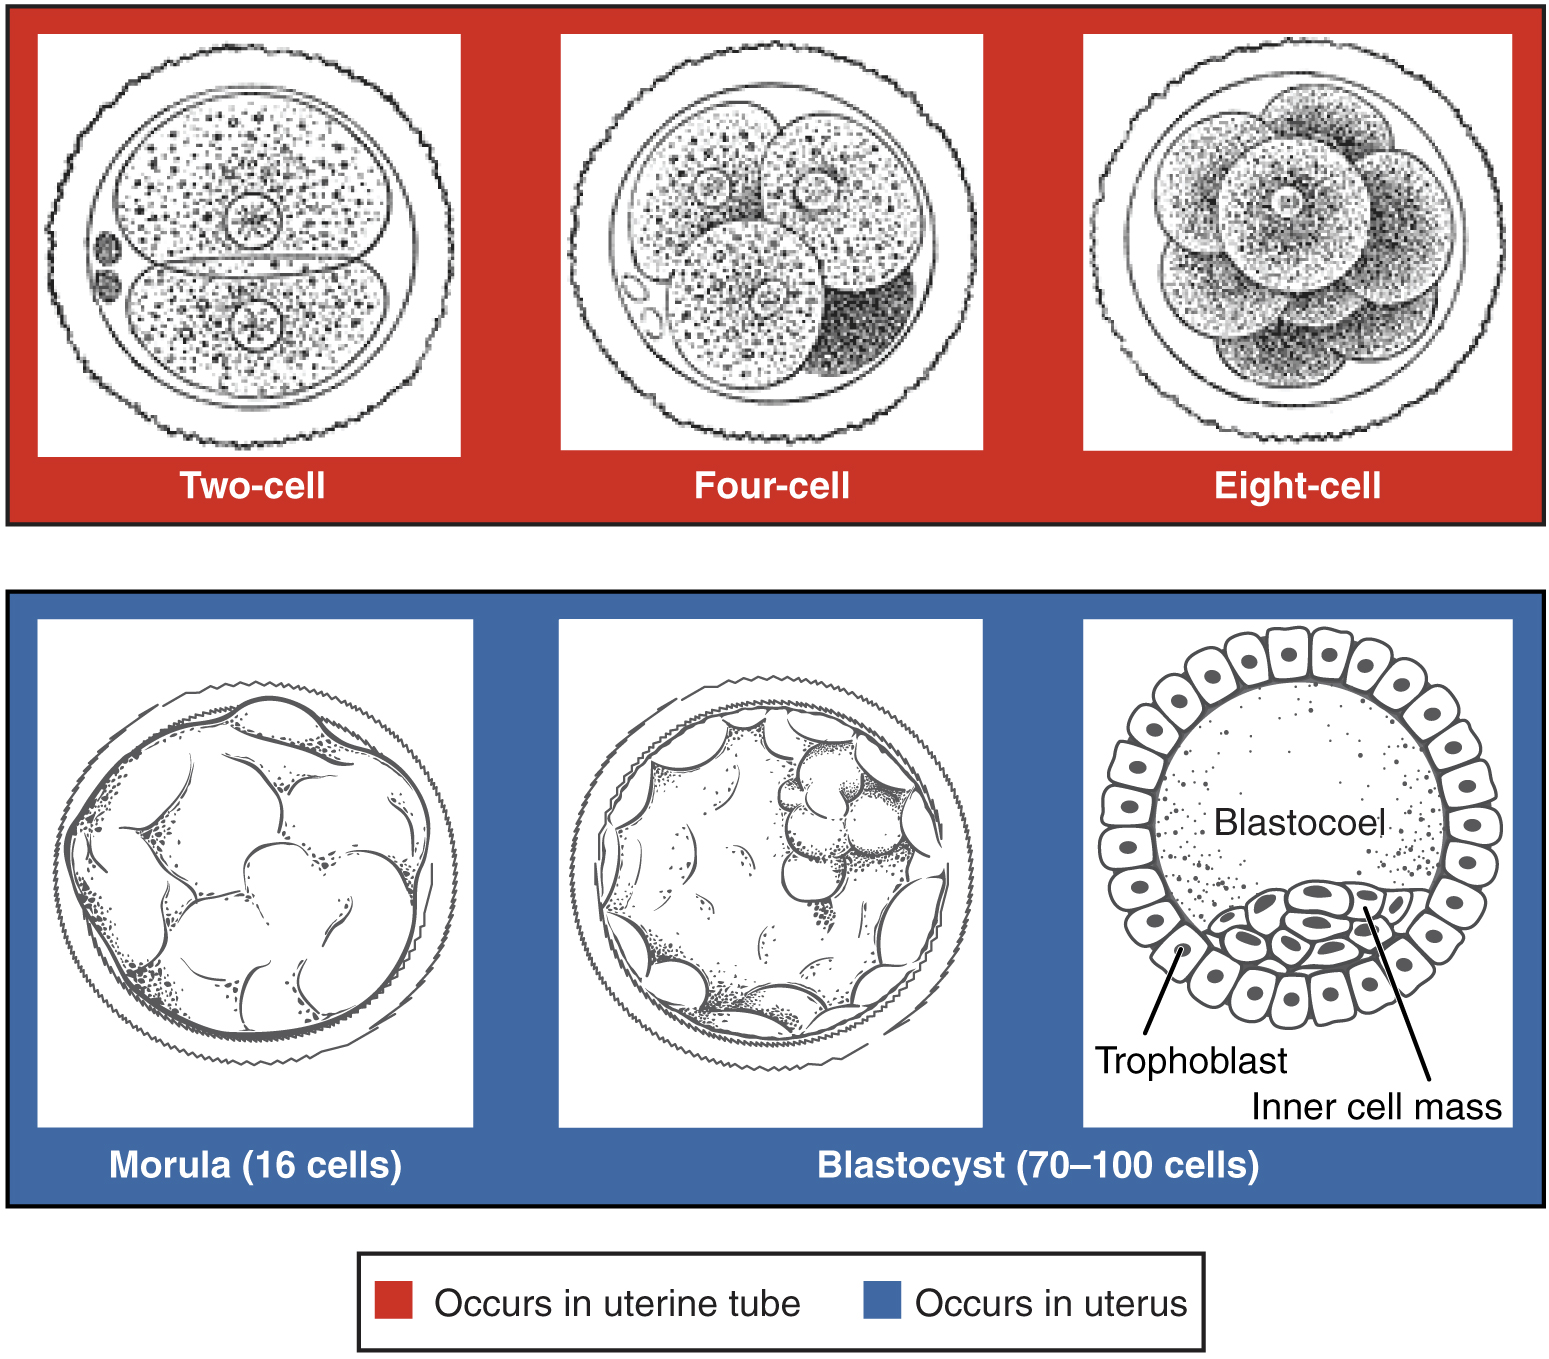 28 2 Embryonic Development Anatomy And Physiology